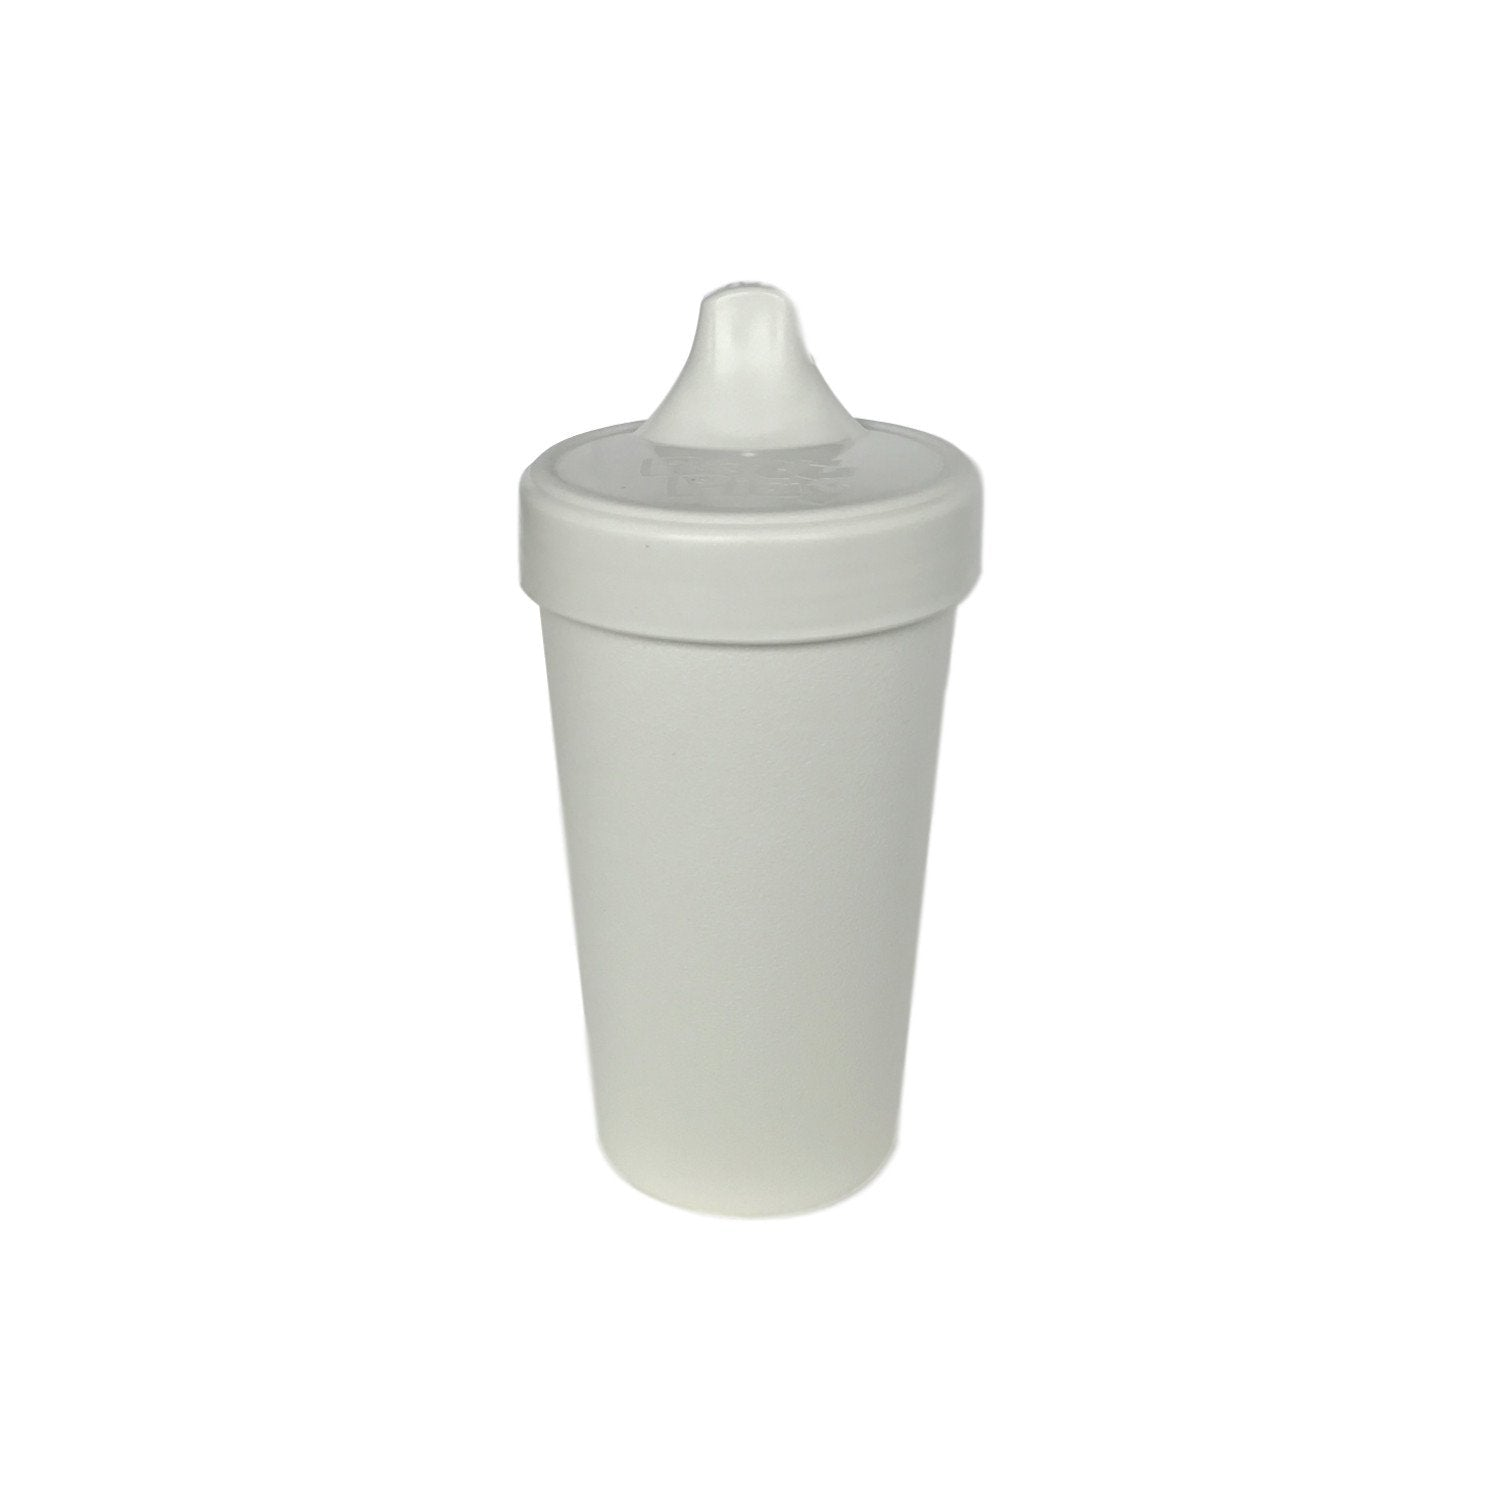 Replay Sippy Cup Replay Sippy Cups White at Little Earth Nest Eco Shop